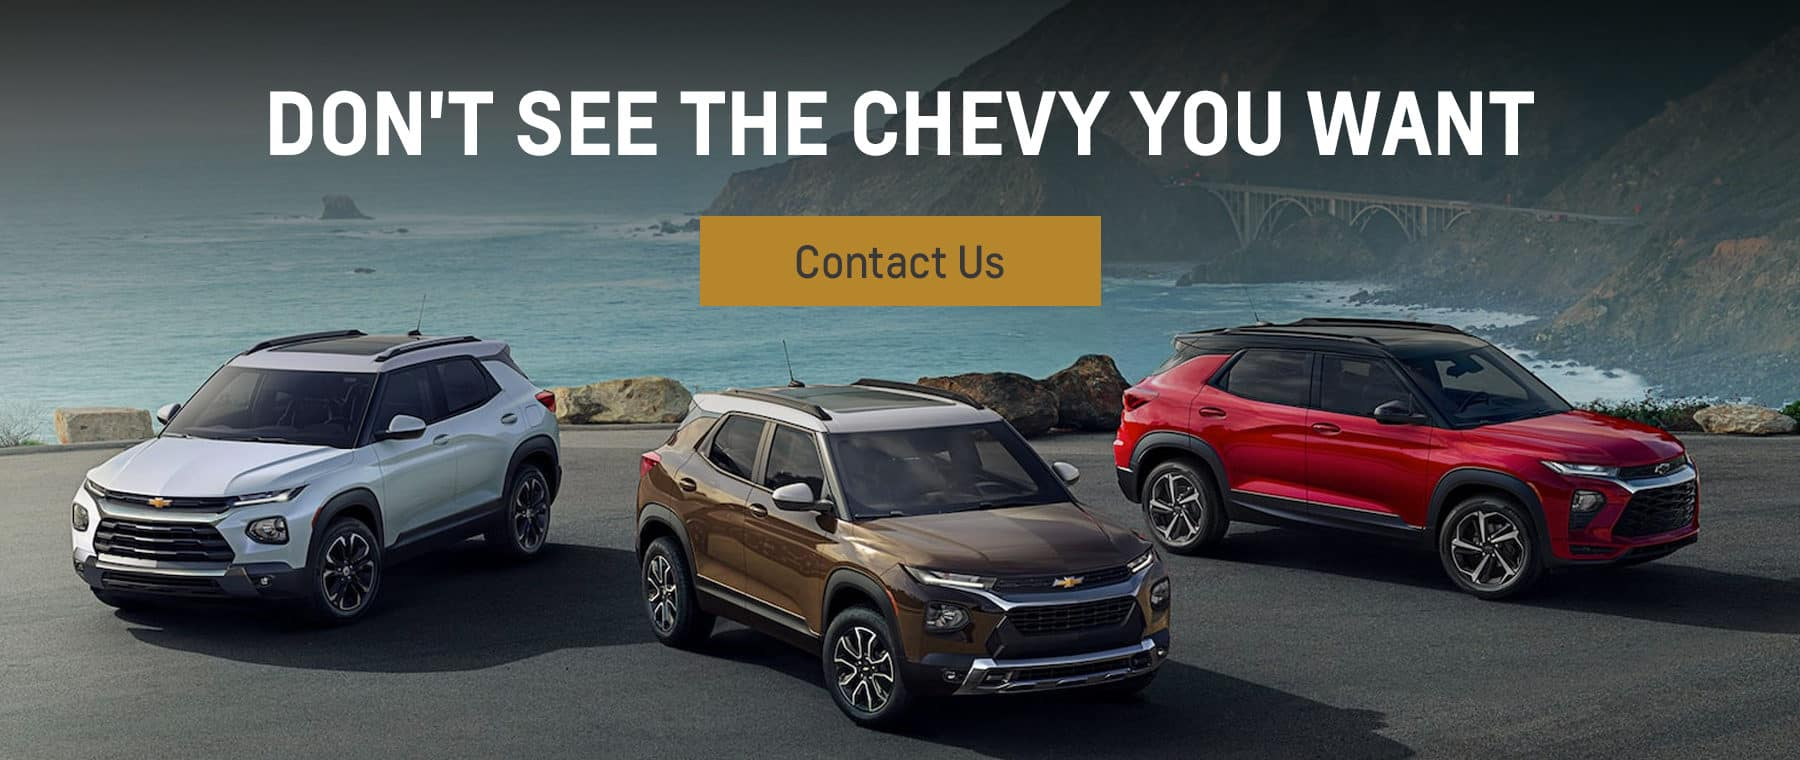 Don't see the Chevy You Want, Contact Us